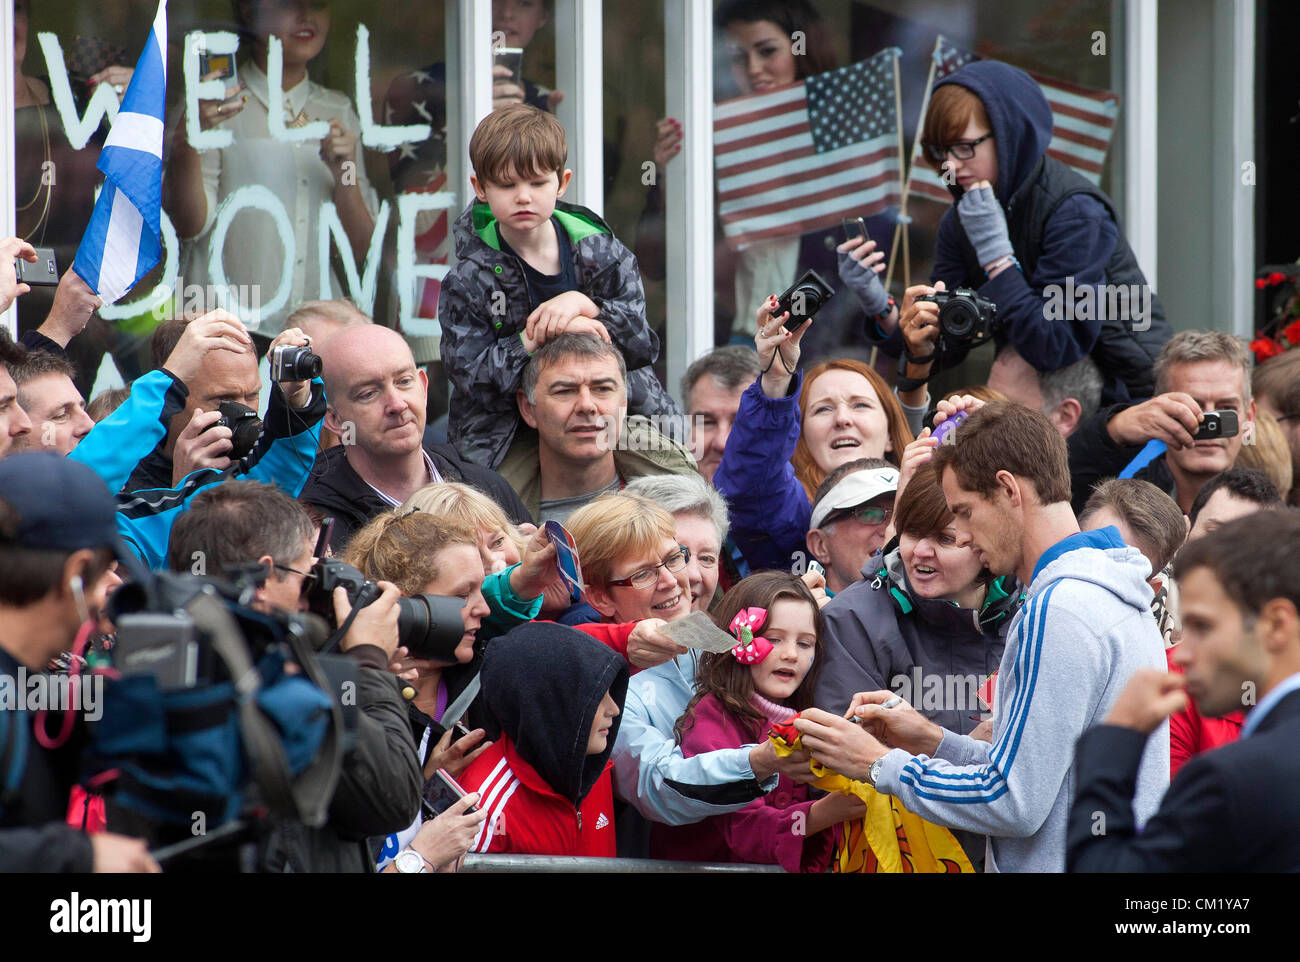 Dunblane, Scotland, UK, Sunday 16th September 2012. The new US Open Tennis Champion Andy Murray returned to Scotland - Stock Image